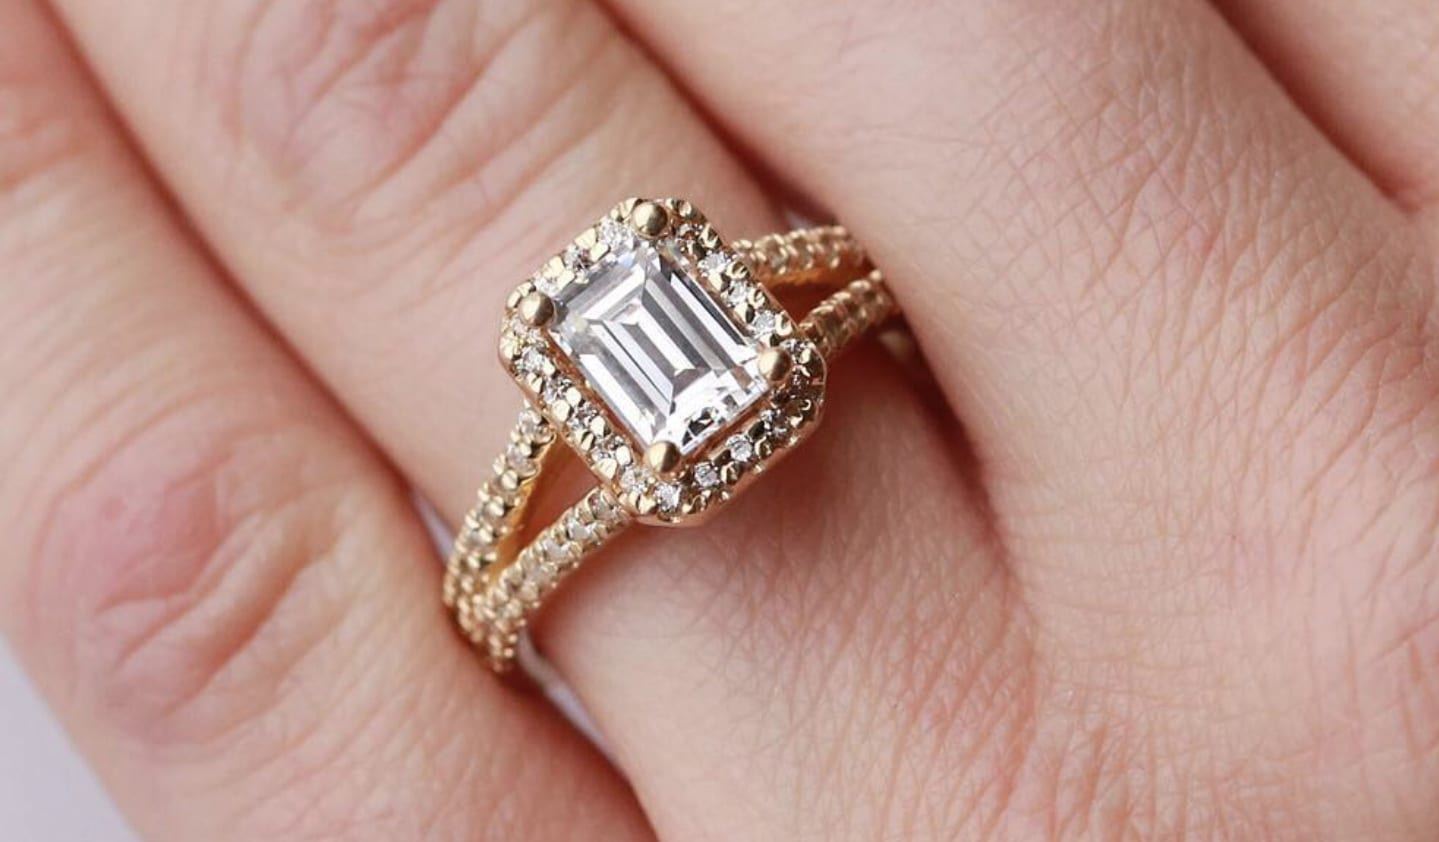 A Diamond Nexus halo Emerald cut engagement ring in yellow gold.